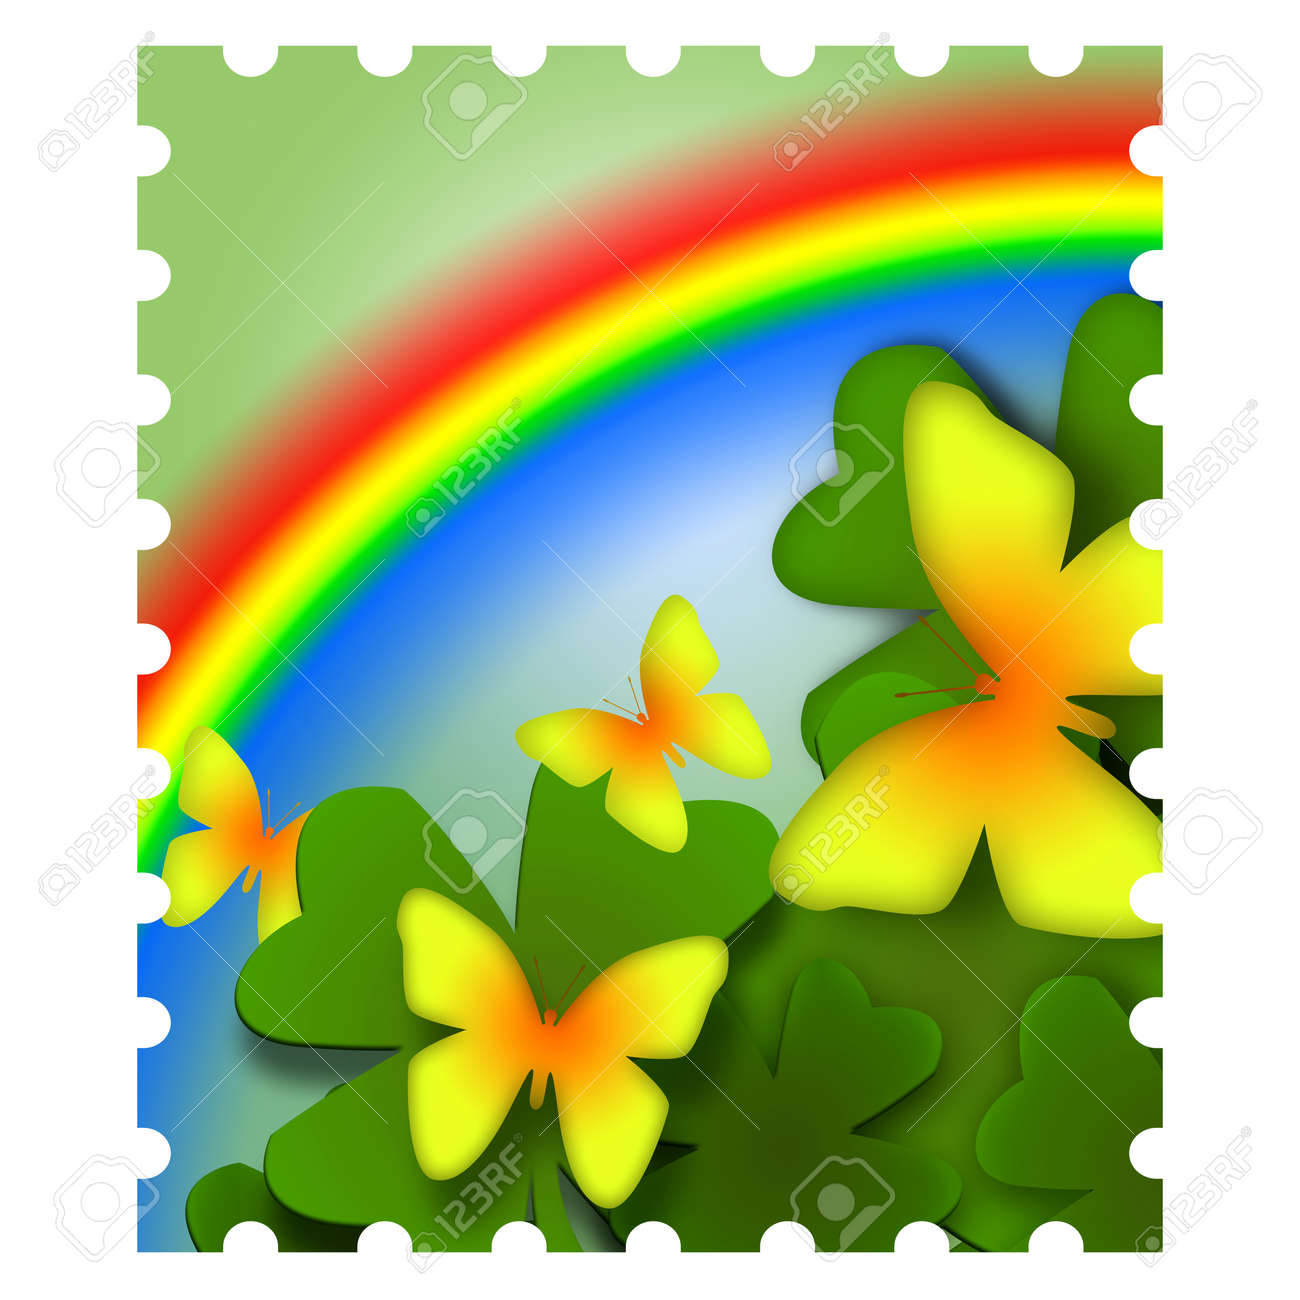 Spring inspired postage stamp illustration with yellow butterflies and colorful rainbow Stock Photo - 9137987